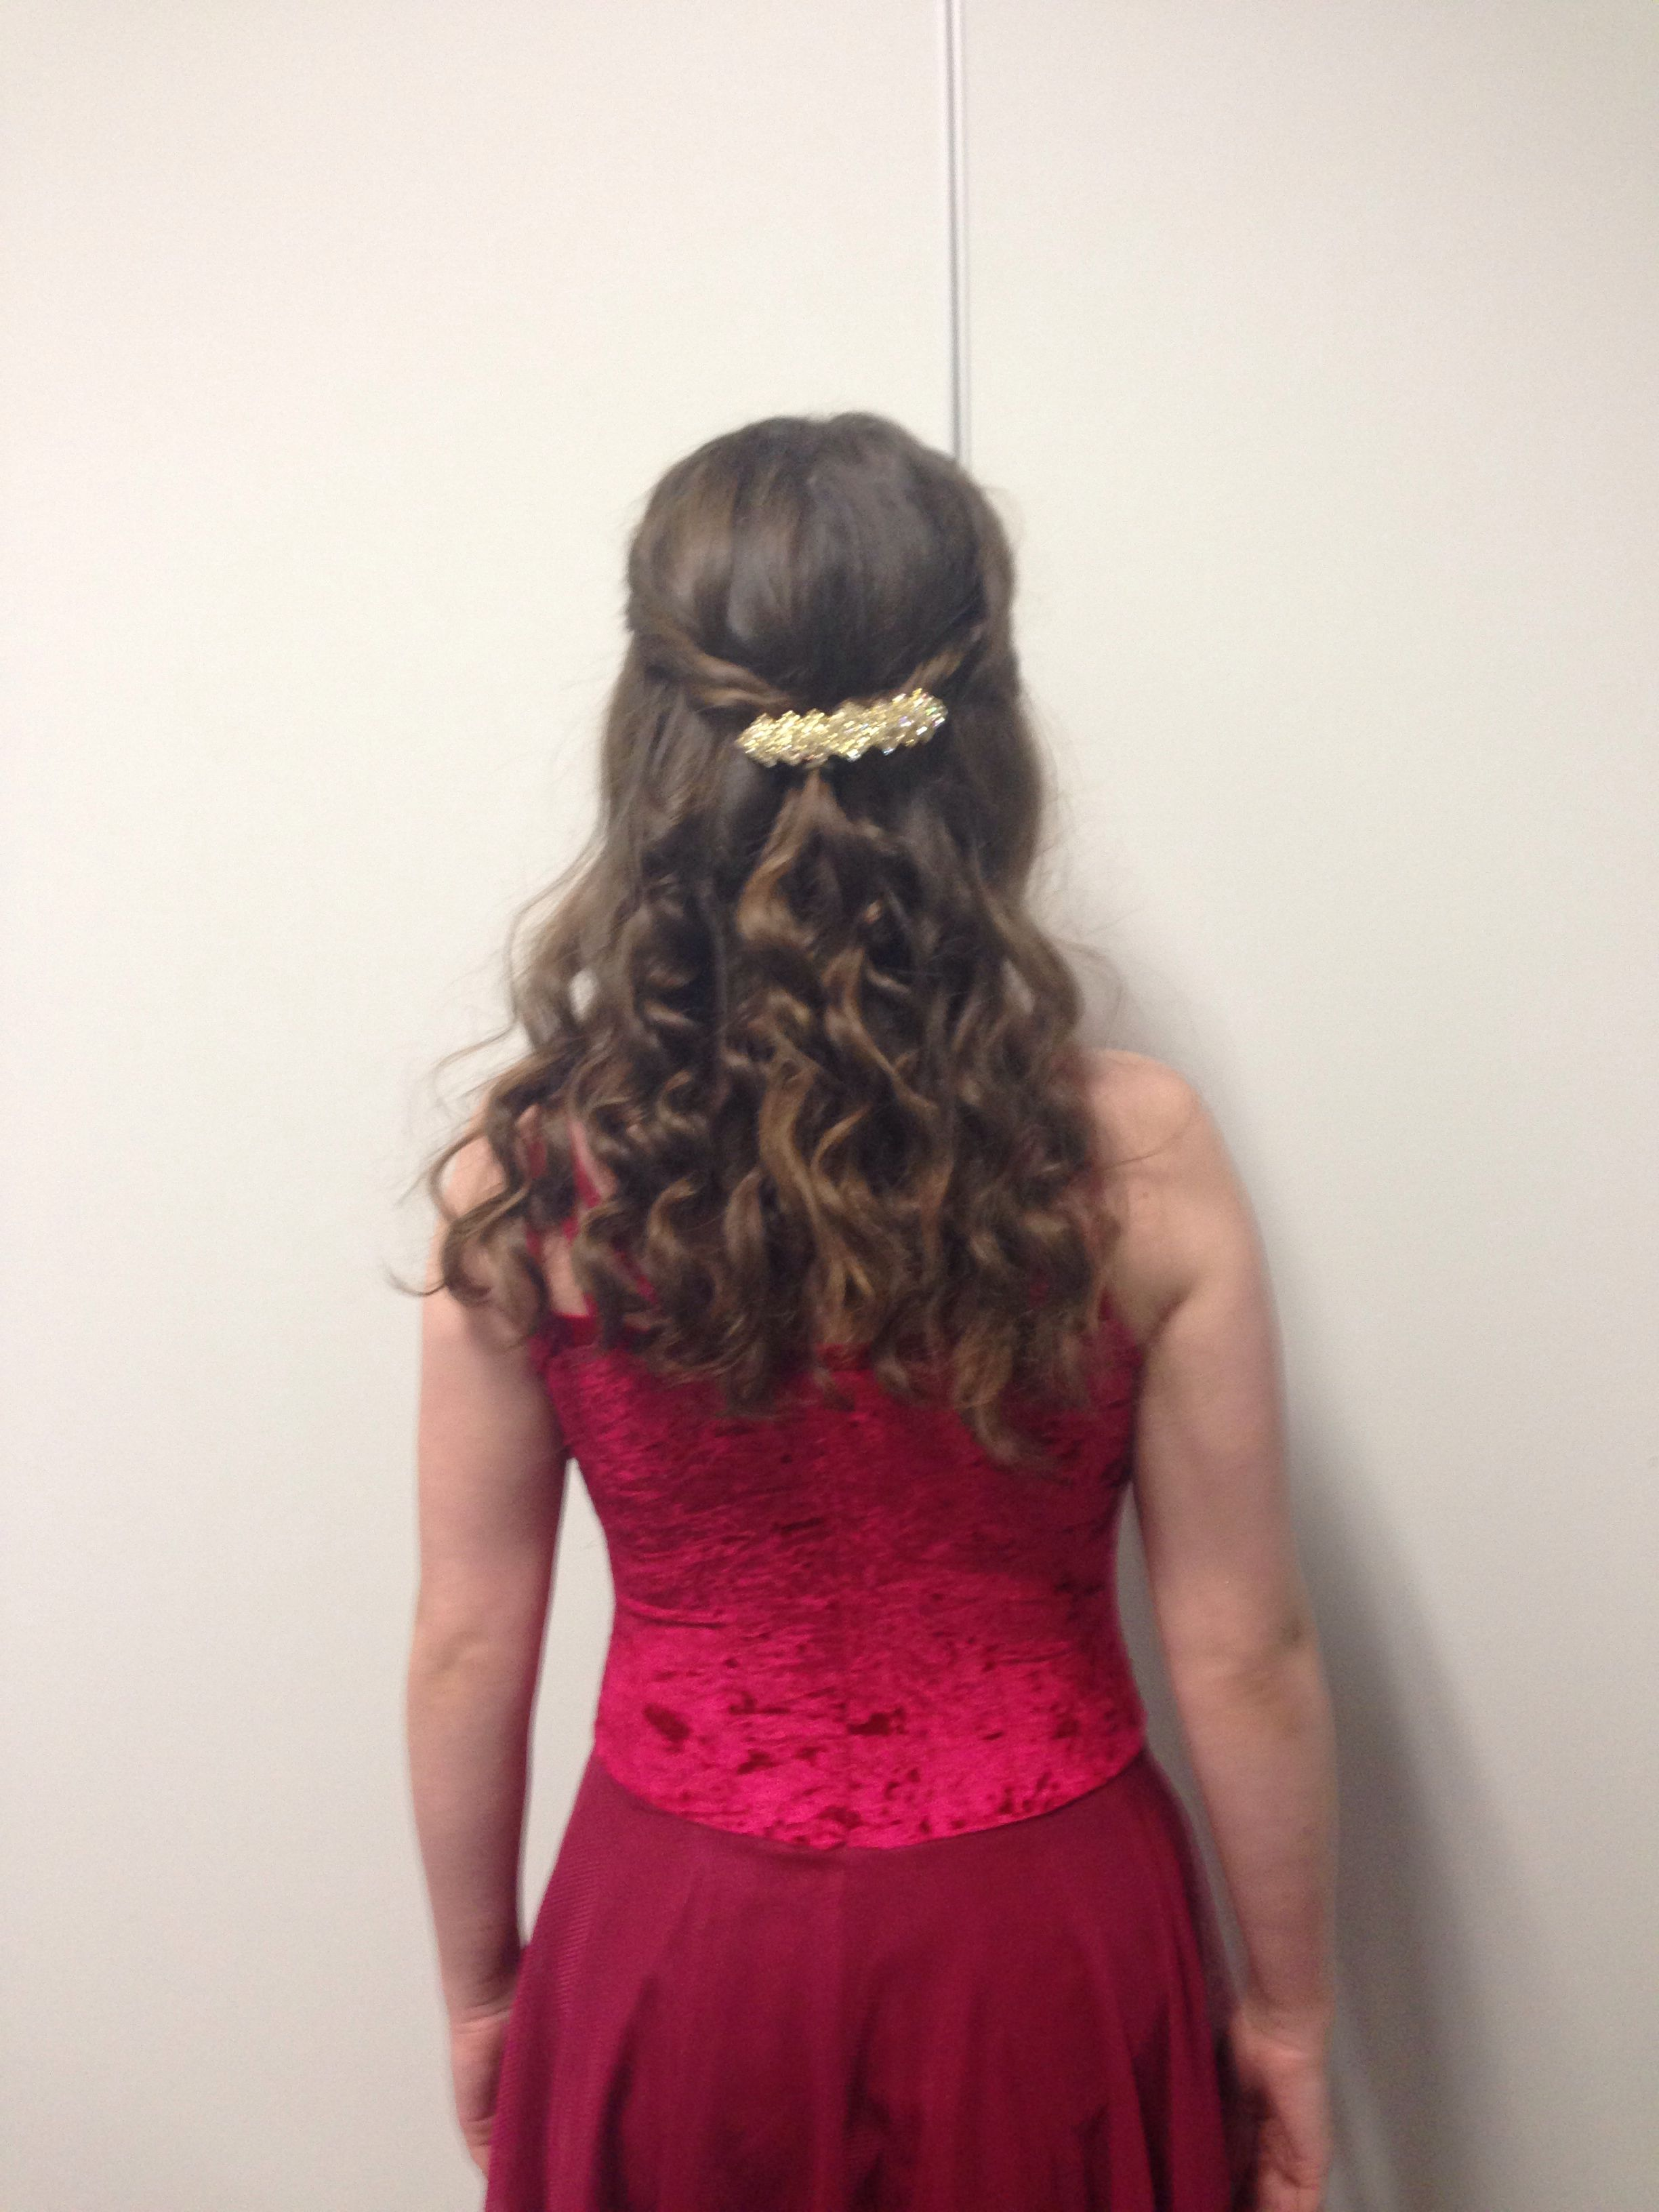 curly hair ready for lyrical solo | dance in 2019 | dance